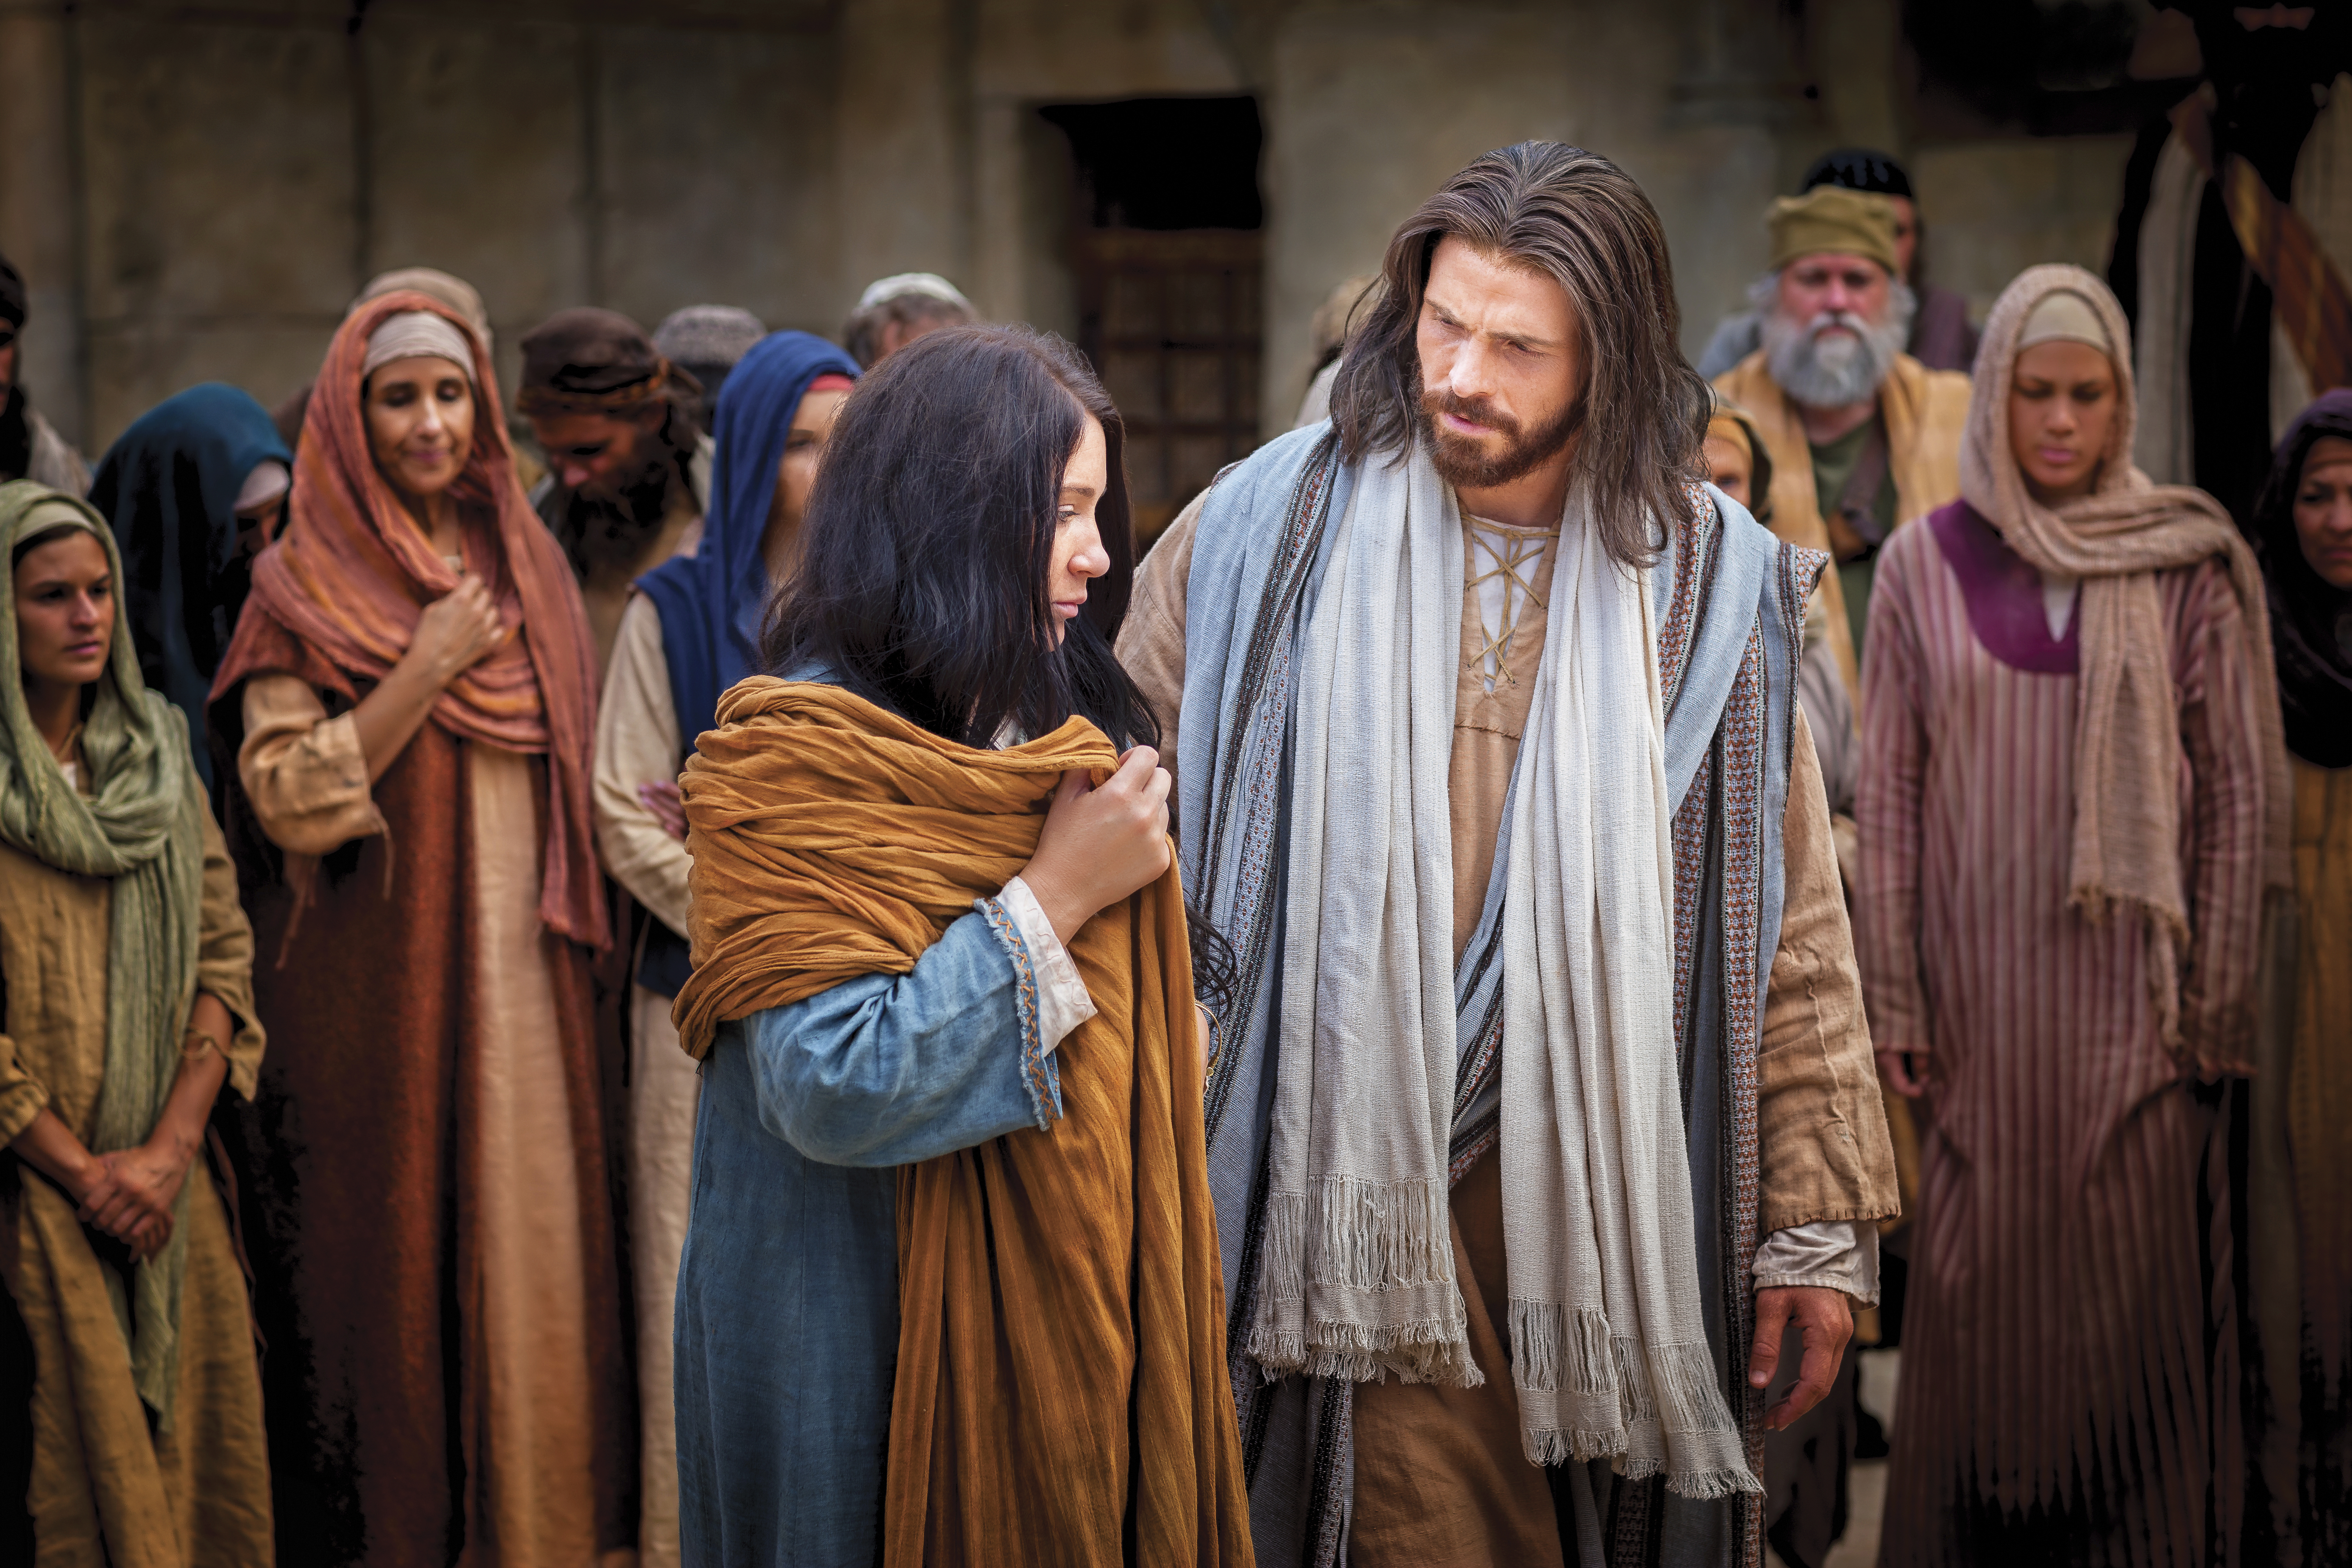 Christ standing beside the woman who was taken in adultery.